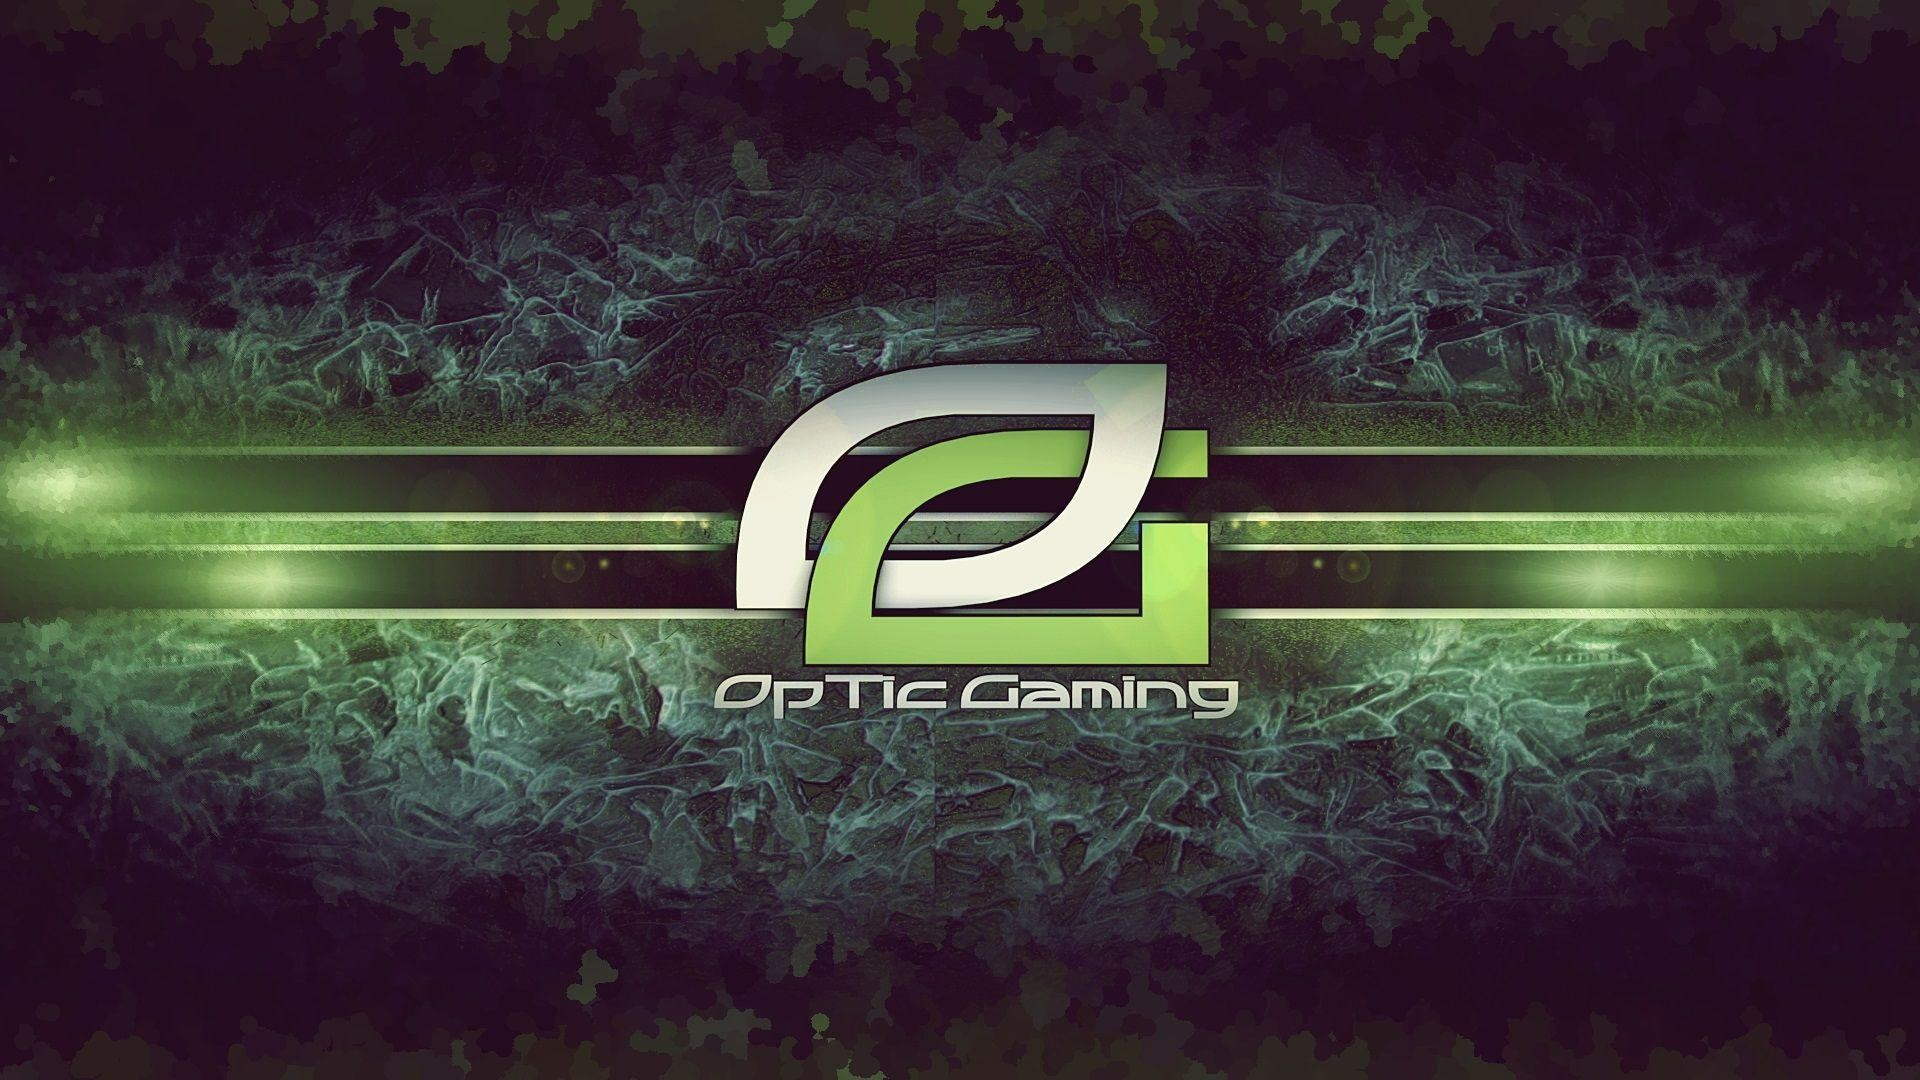 Ps4 Optic Gaming Wallpapers